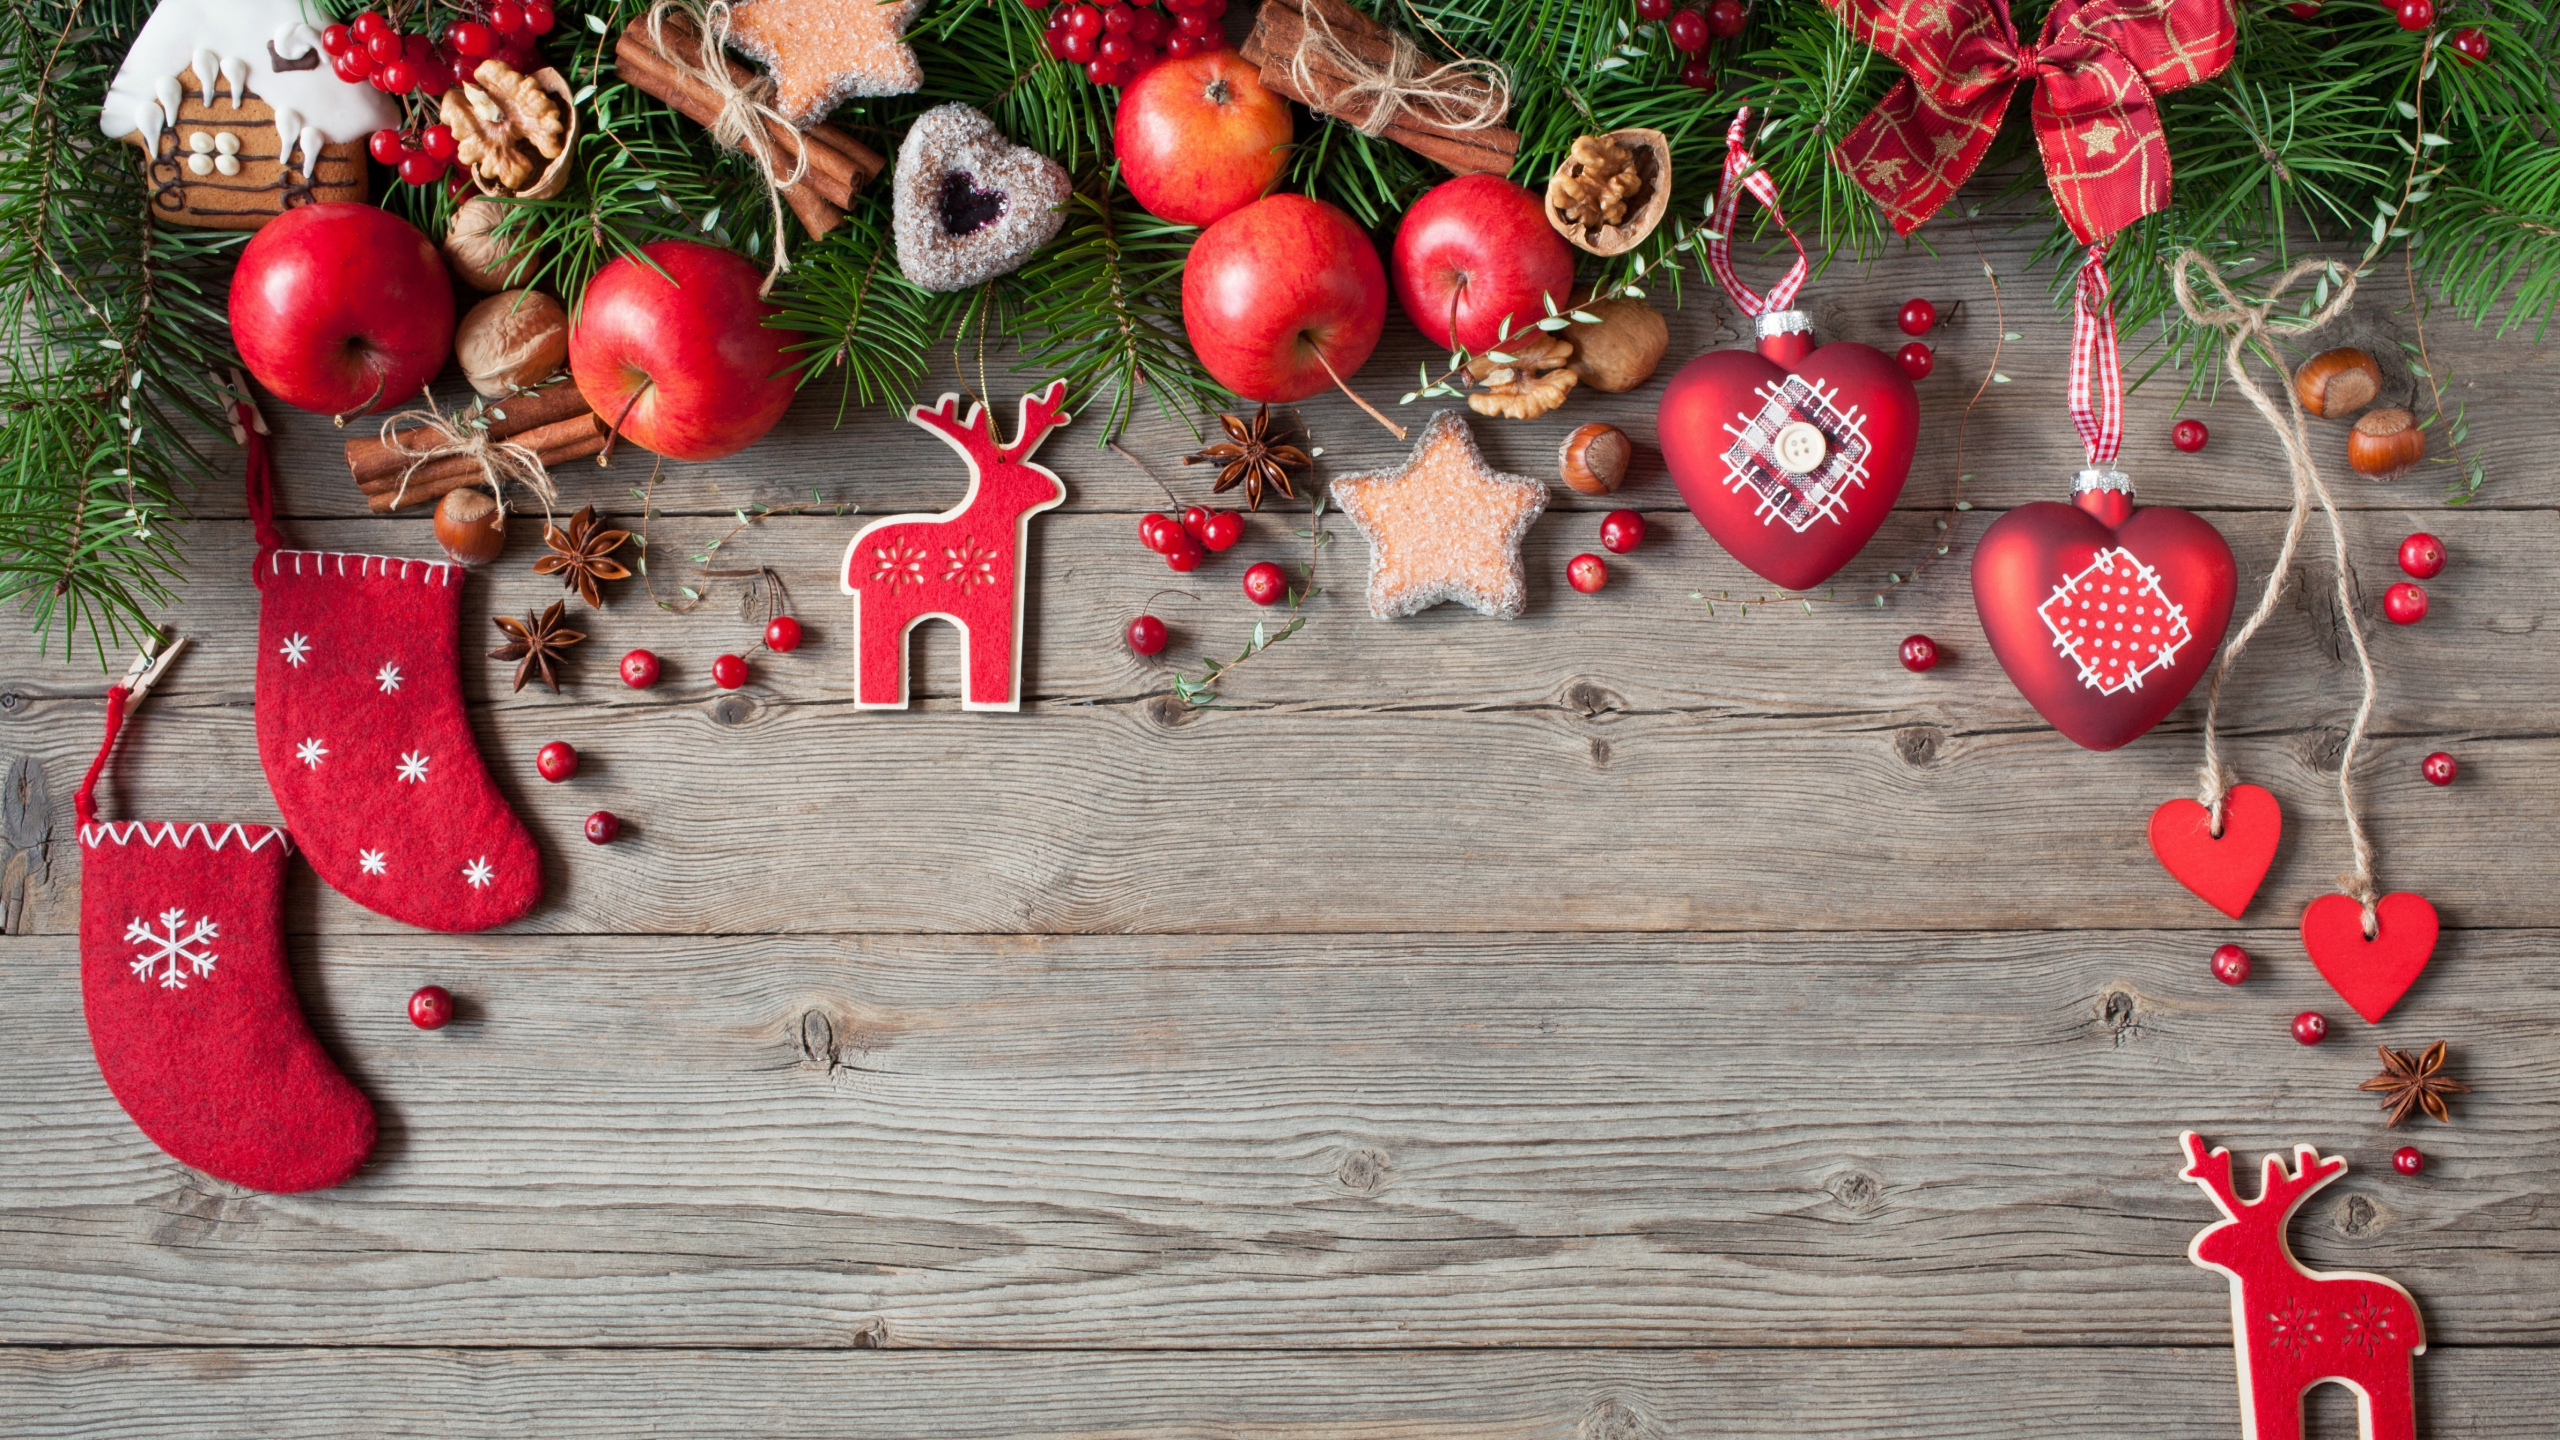 Download 2560x1440 Wallpaper Decorations Holiday Christmas